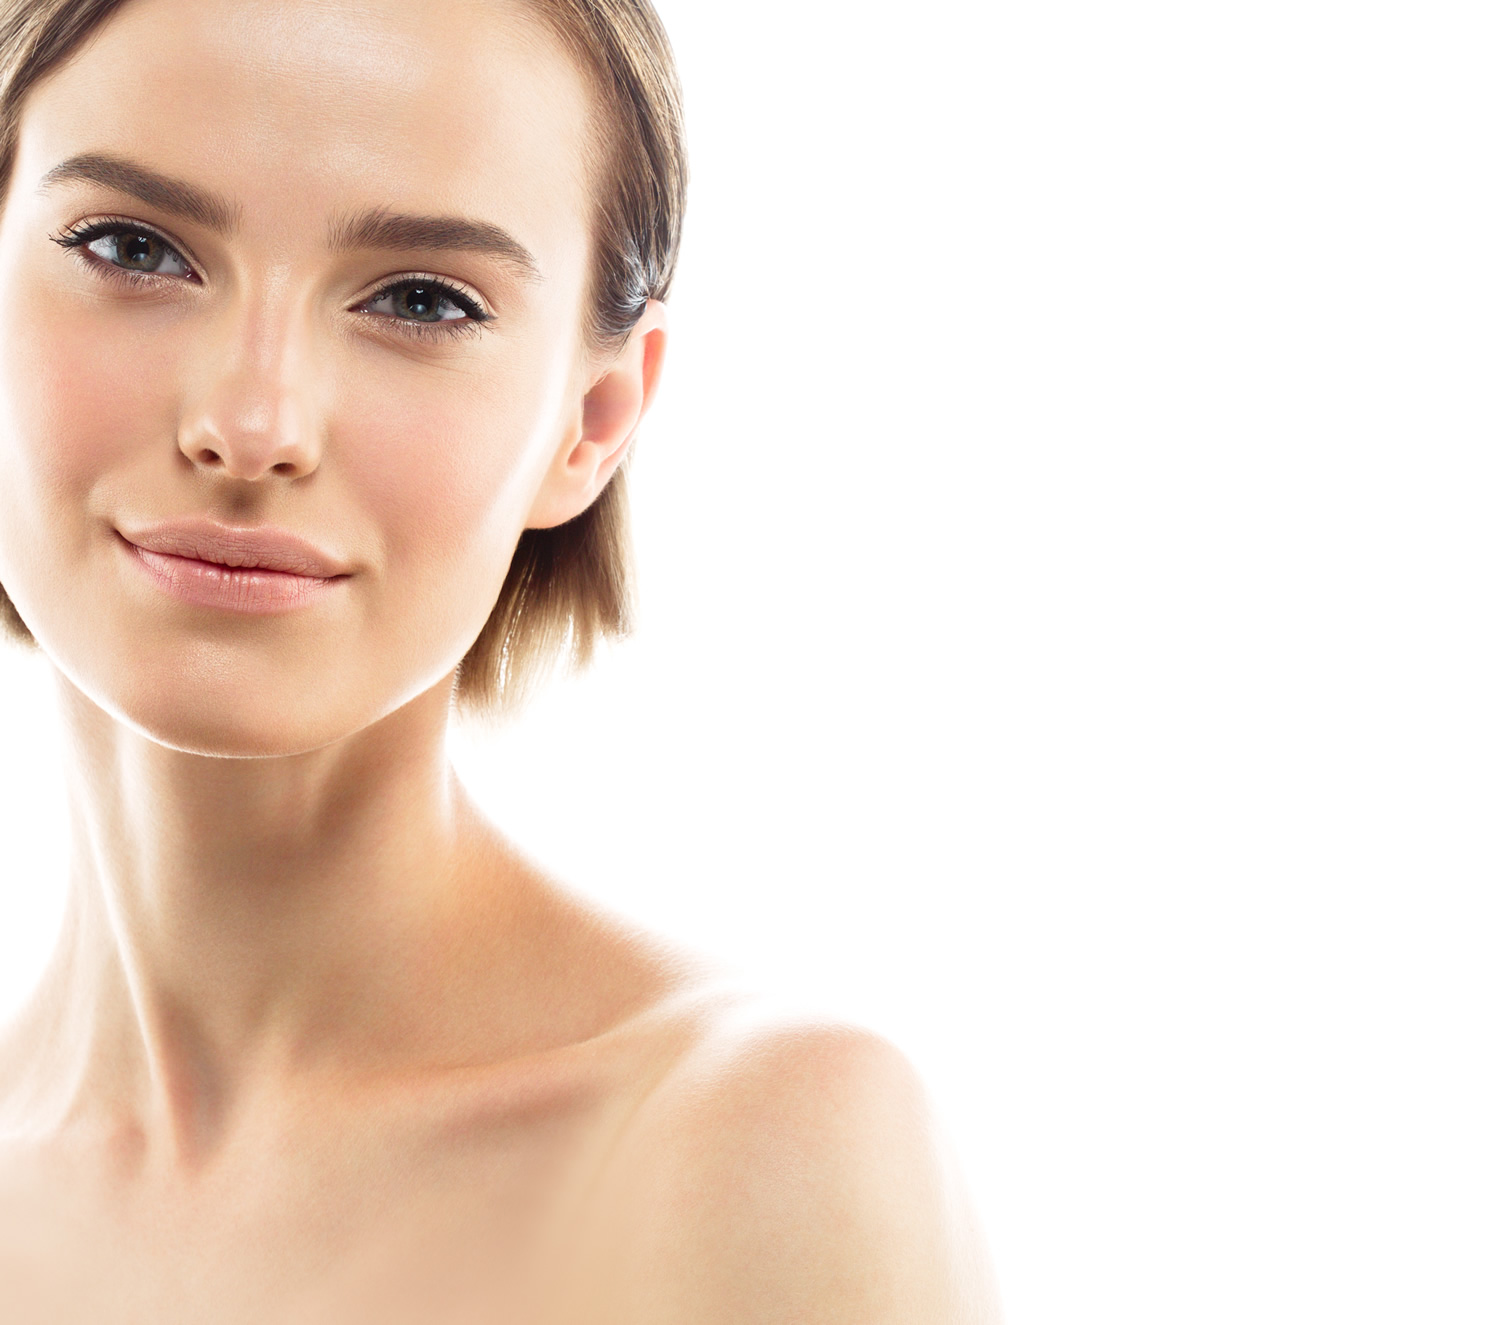 Lip Fillers are particularly en-vogue with Dr. Mascaró's younger patients - a natural looking, fuller lip can enhance an already beautiful face